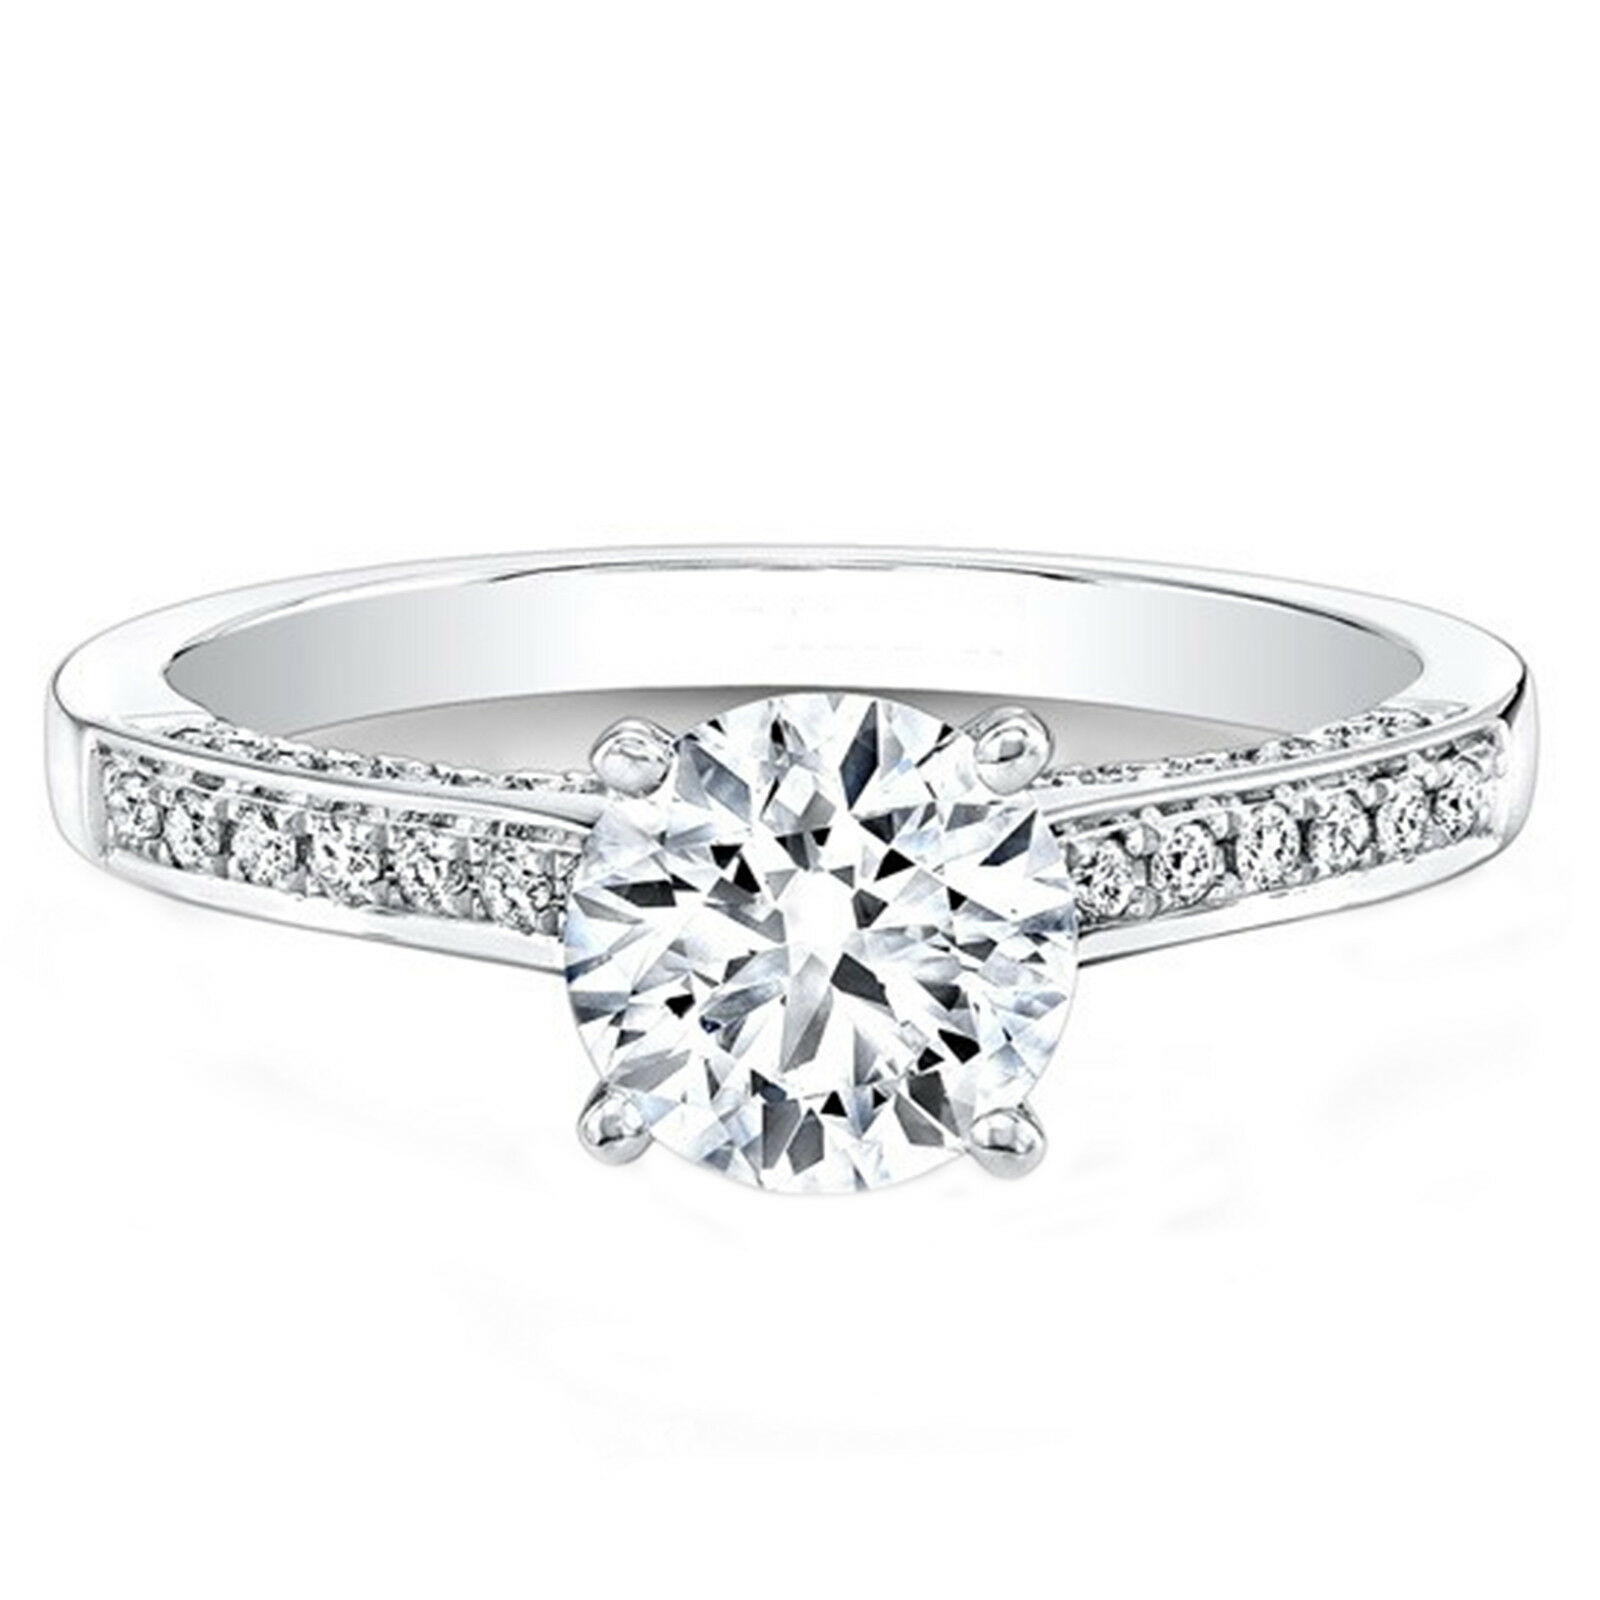 0.64 Ct Round Cut Real Diamond Engagement 14K Solid White gold Ring Size 5 6.5 7